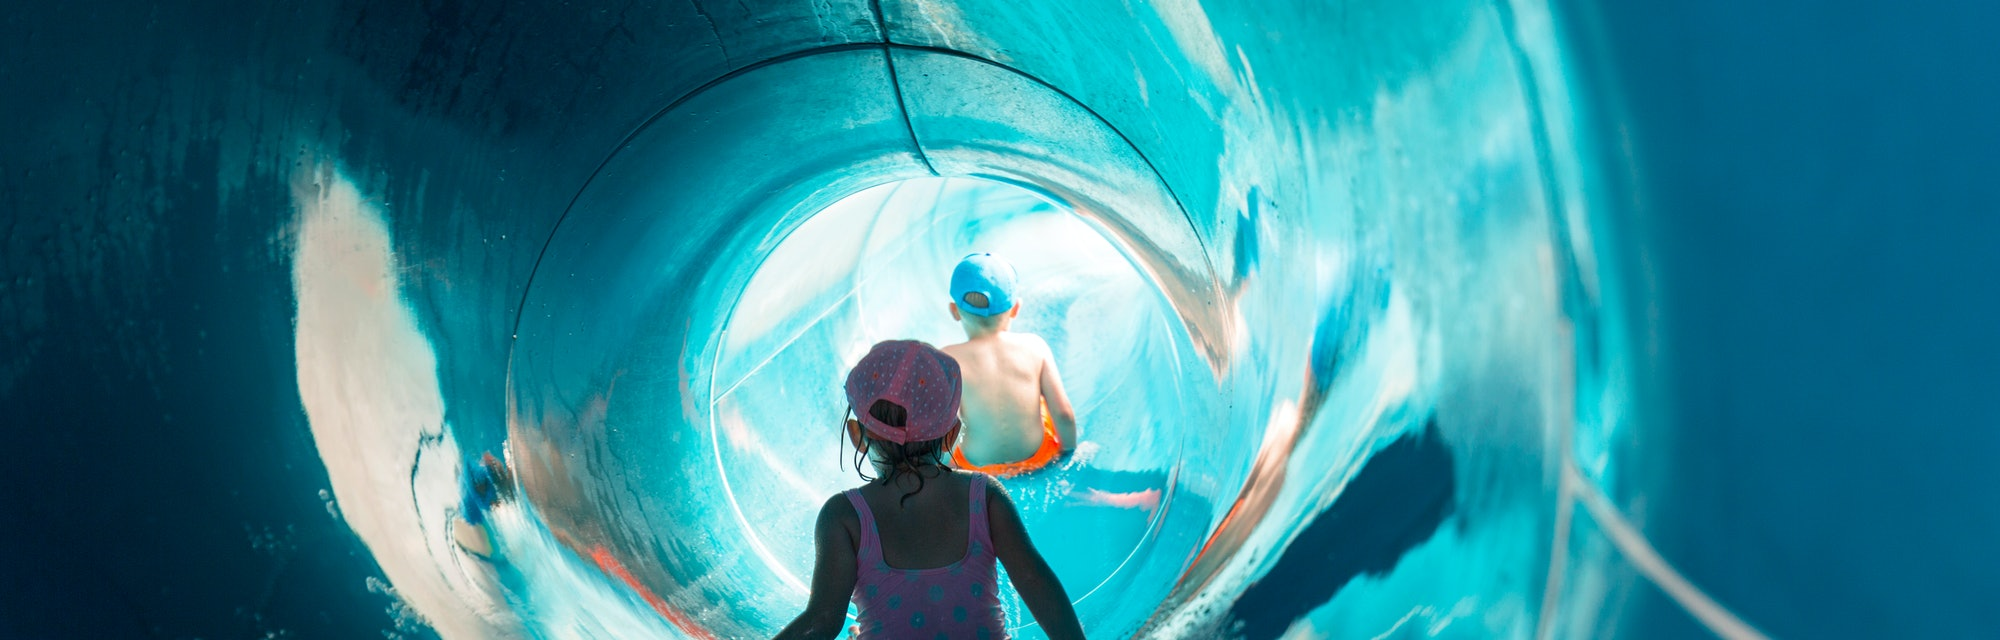 Two children on water slide at aquapark